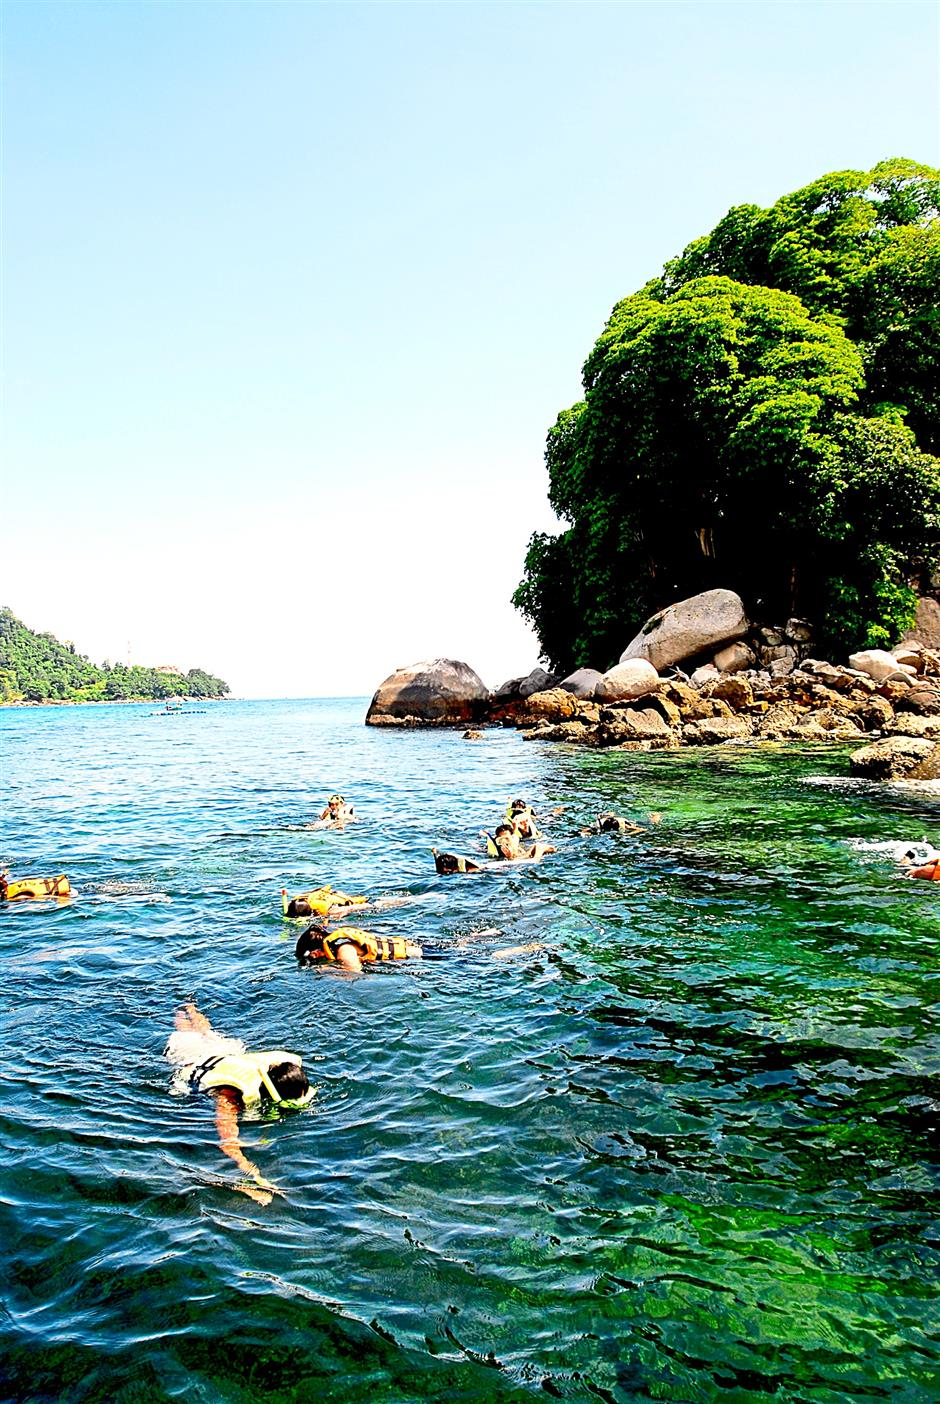 Snorkeling in the pristine waters of Tioman is a thrilling experience.